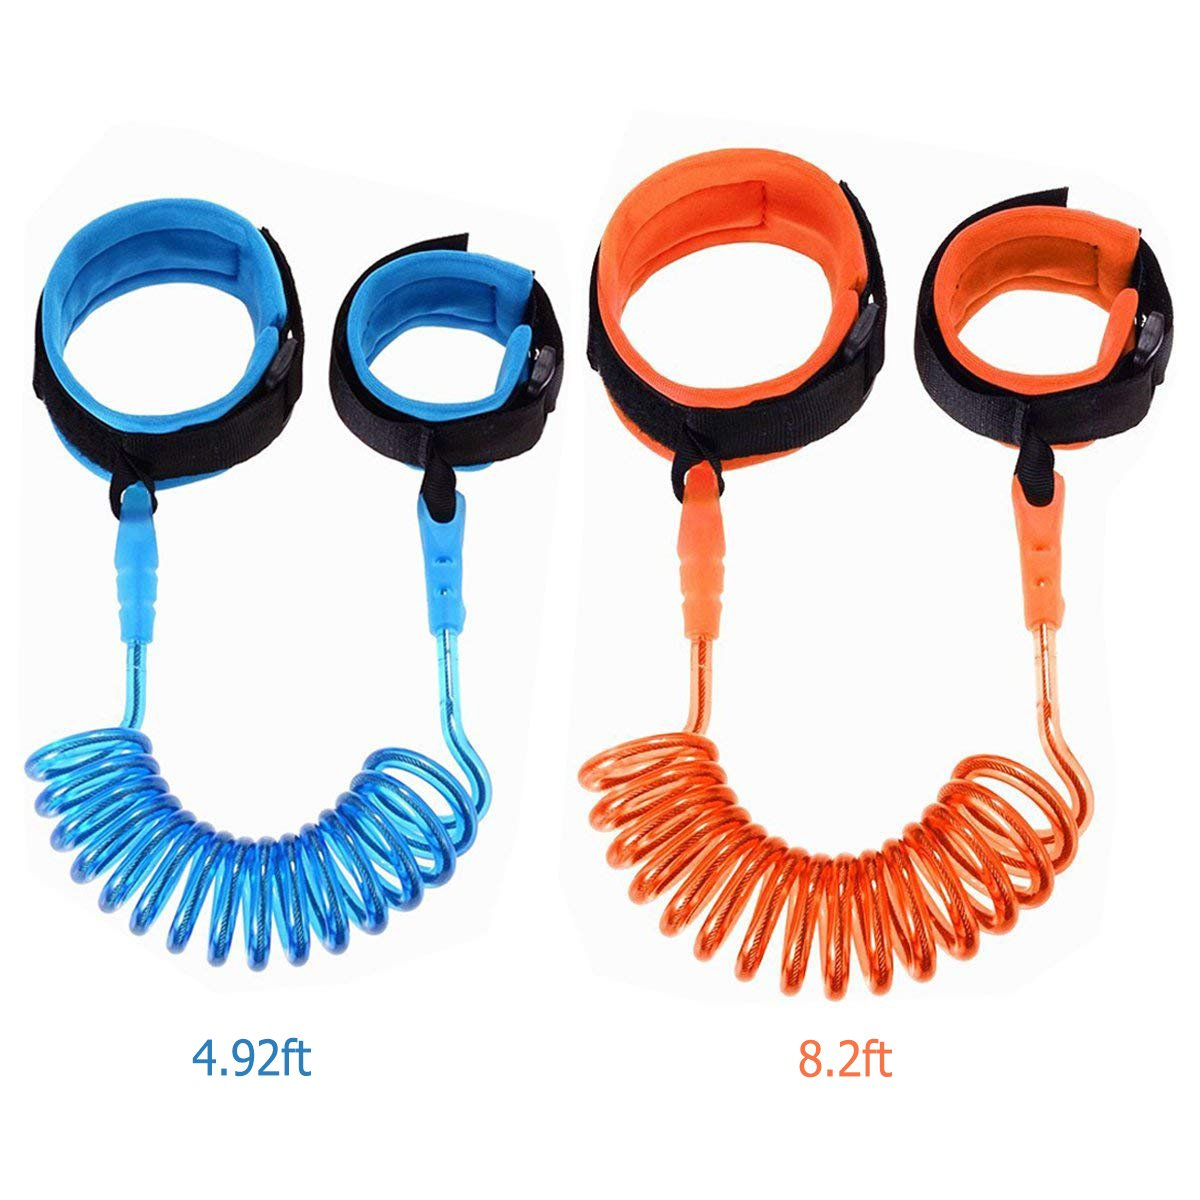 Anti Lost Wrist Link, GiftedMary 2 Pack Safety Wrist Band Straps Leash Gift for Toddlers Babies Kids for Travel Shopping Outdoor Activities 2.5m Orange and 1.5m Blue